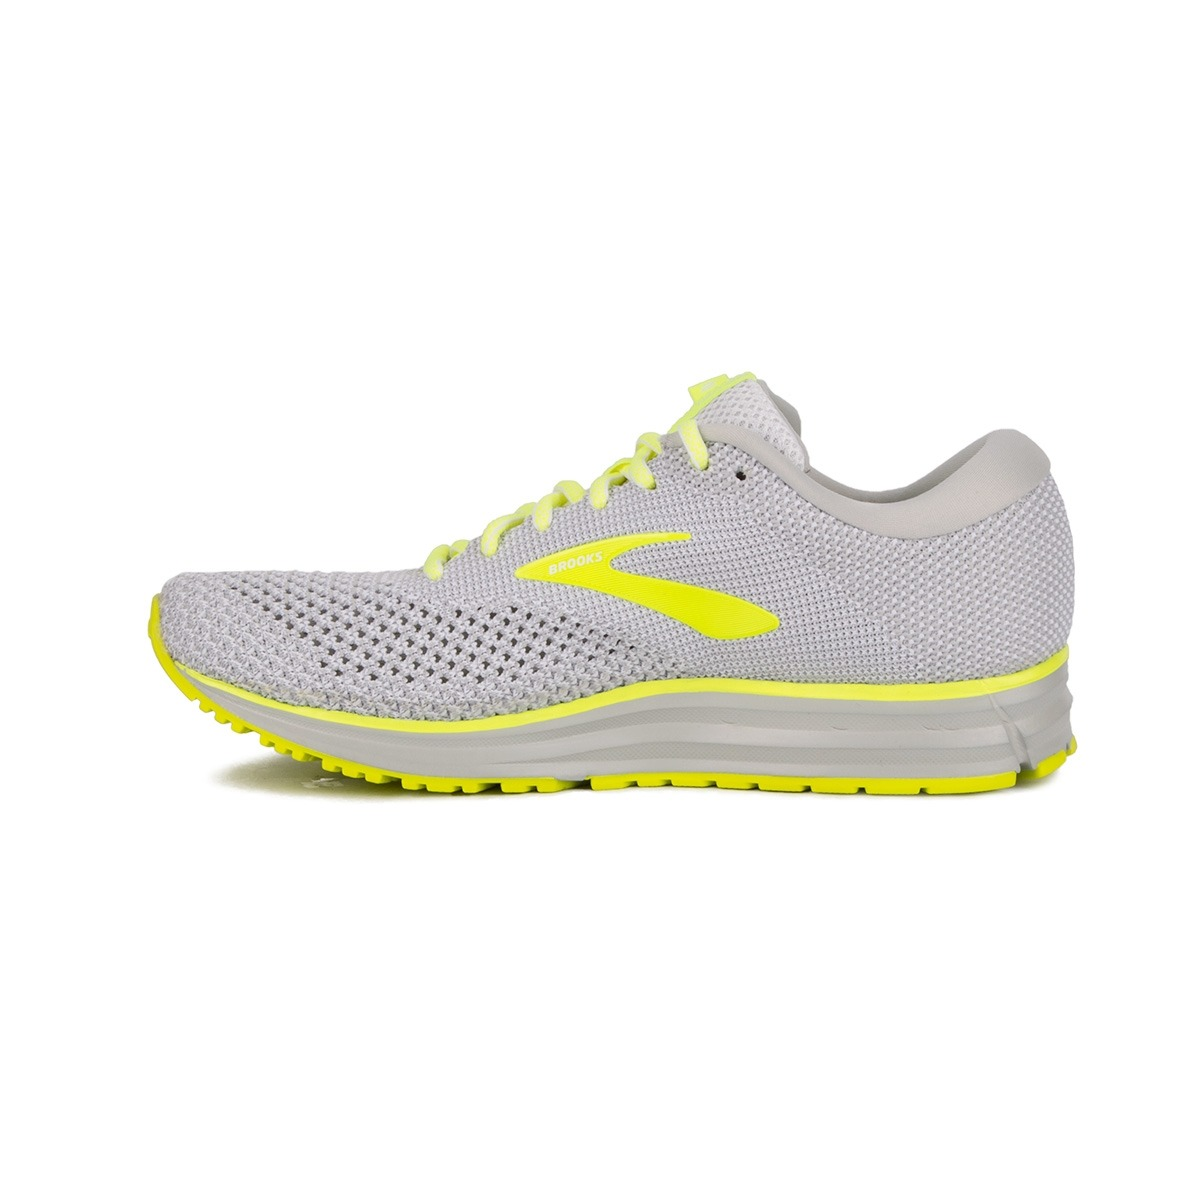 Brooks Revel 2 Grey Black Nightlife Gris Amarillo Fluor Hombre